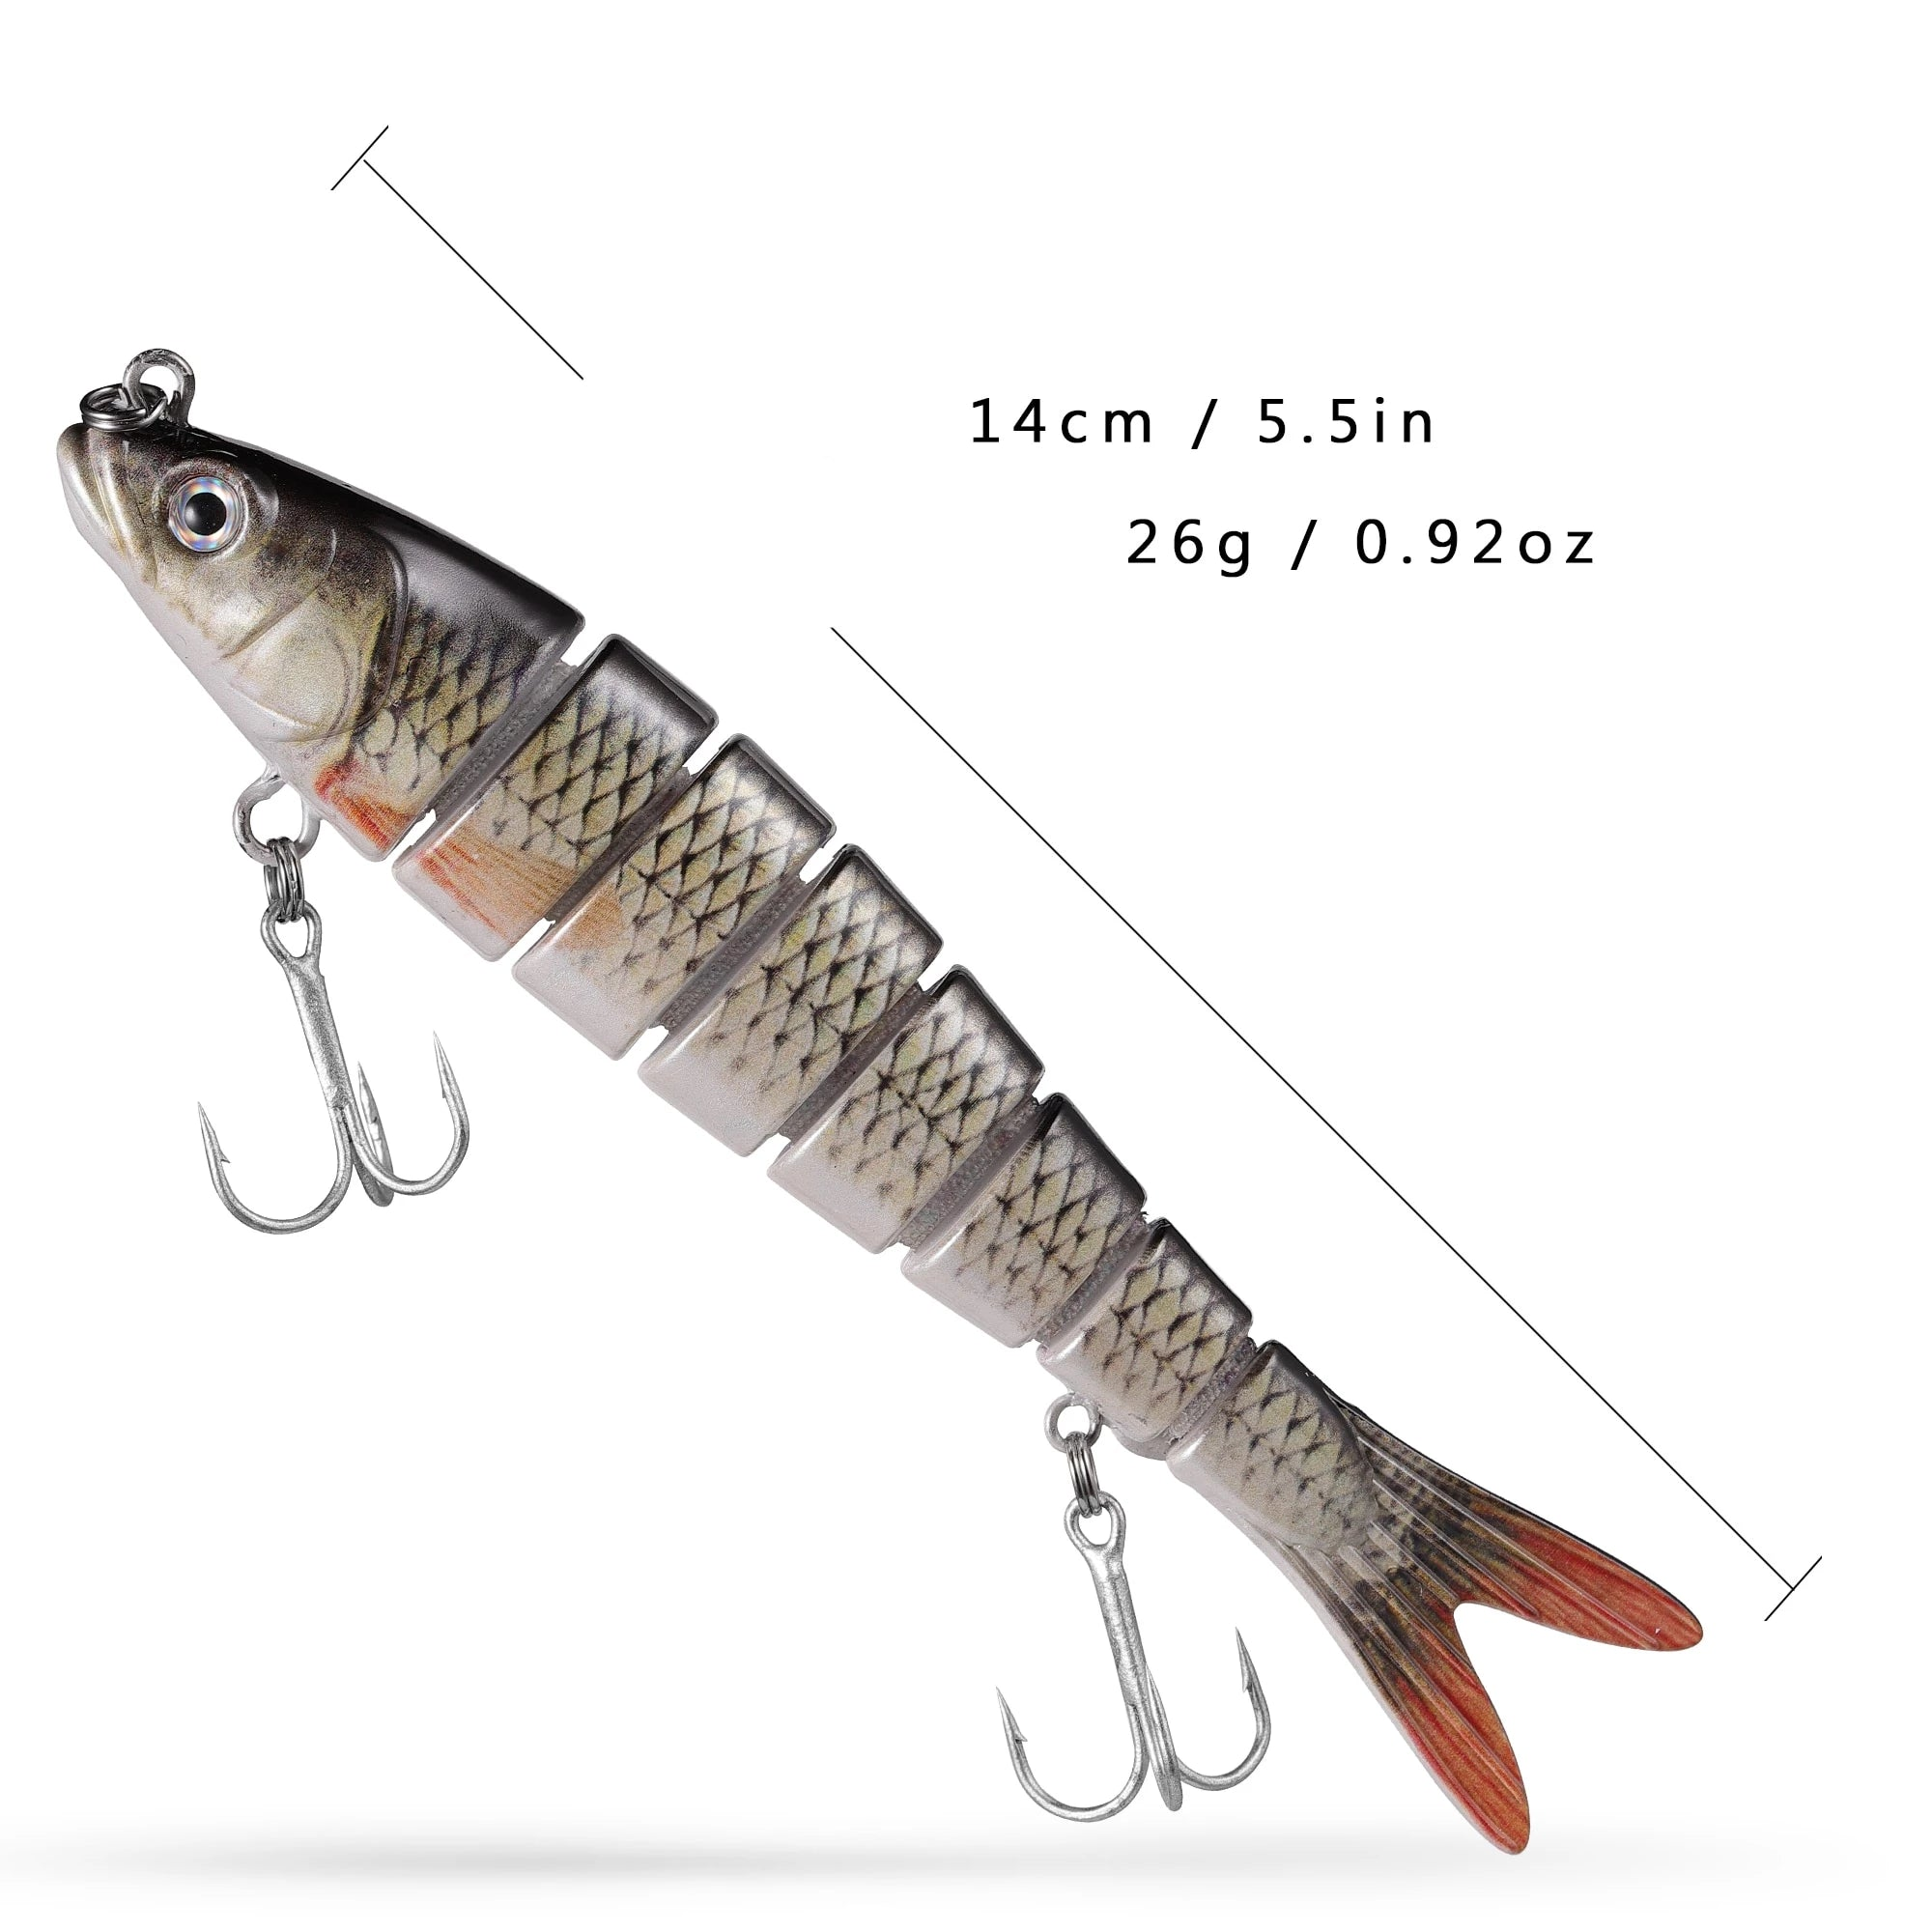 Lifelike Fishing Lure